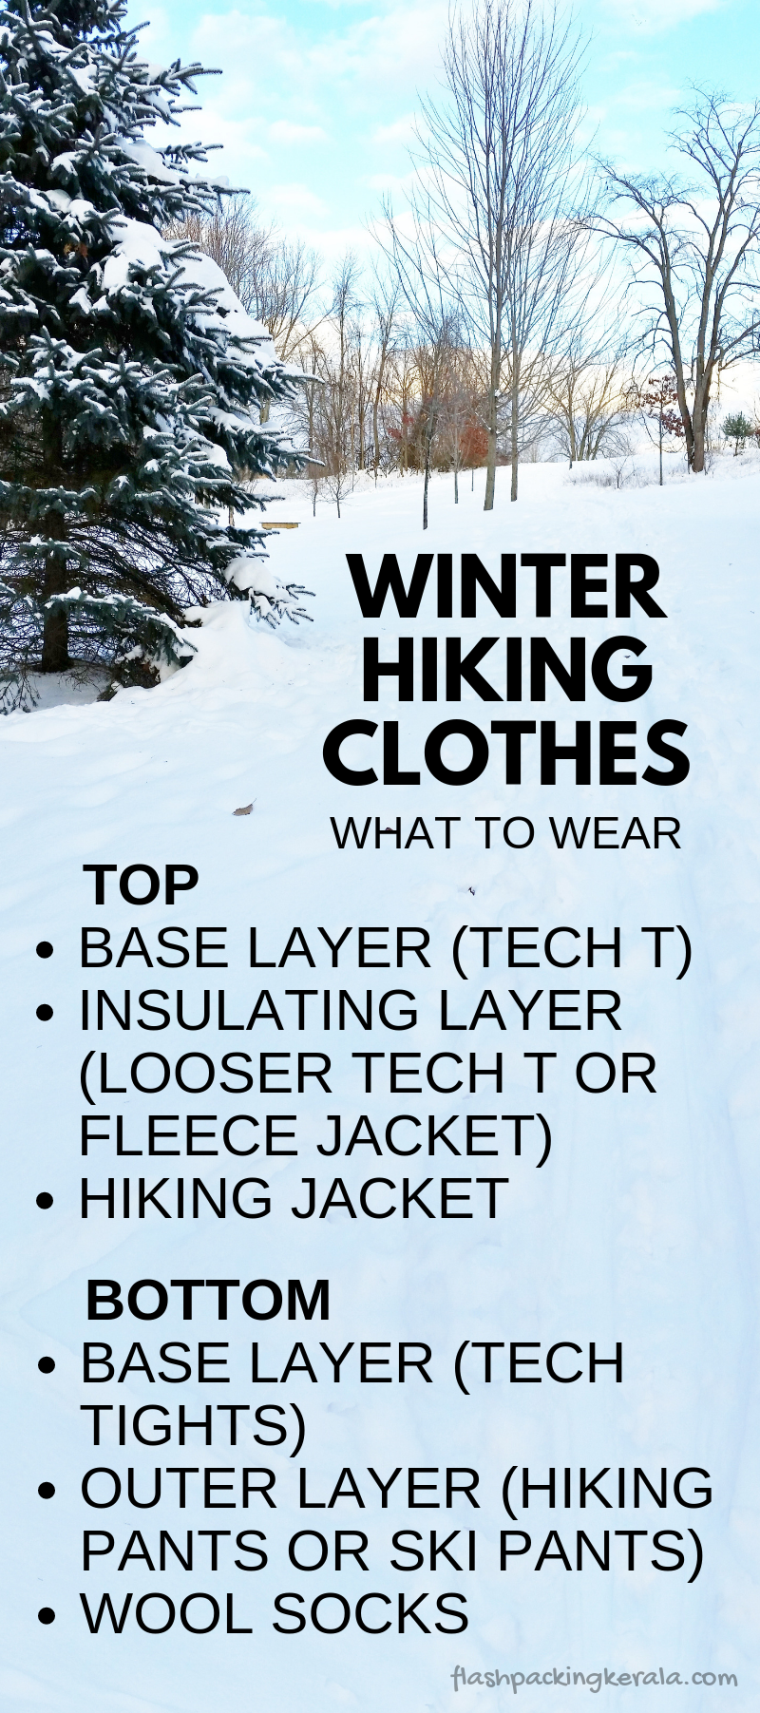 Photo of What to wear hiking in cold weather: Best clothes for winter hiking :: Outdoor travel gear | Flashpacking Kerala